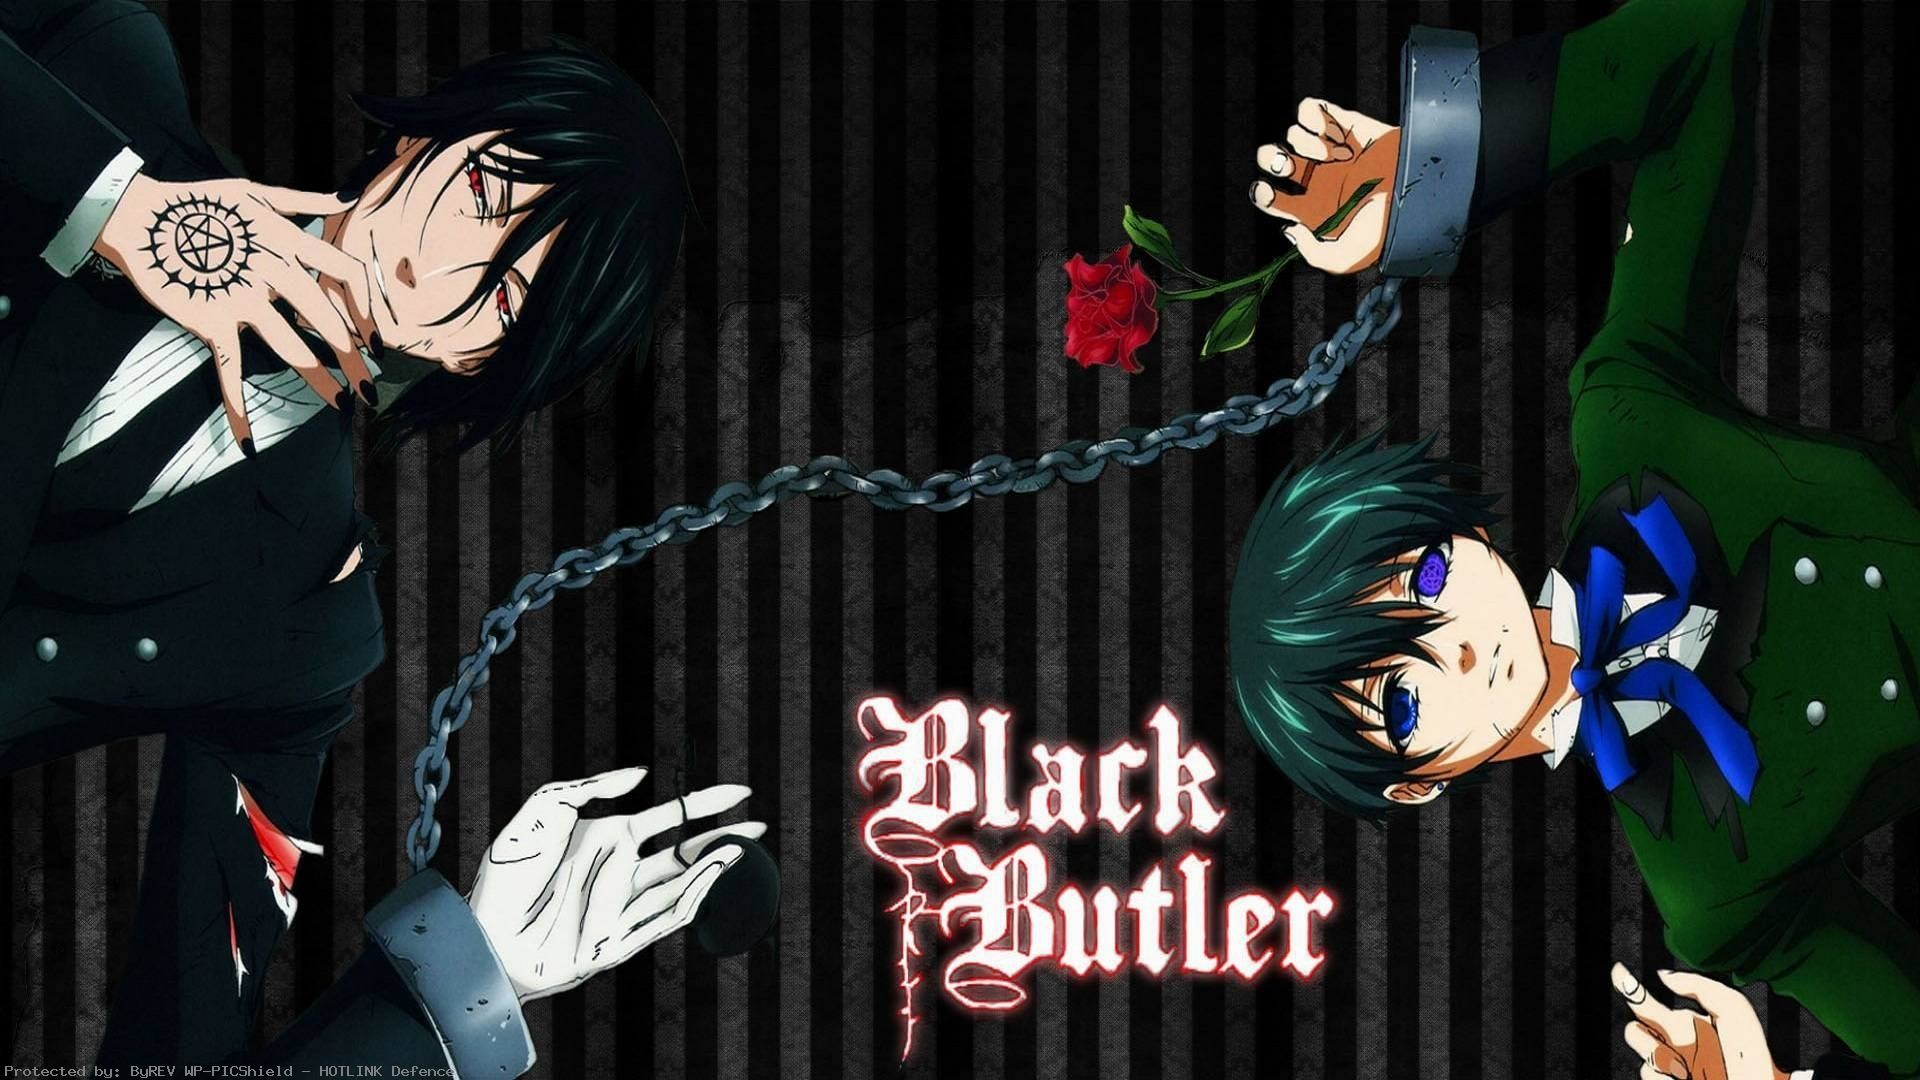 free-computer-for-black-butler-1920-x-1080-